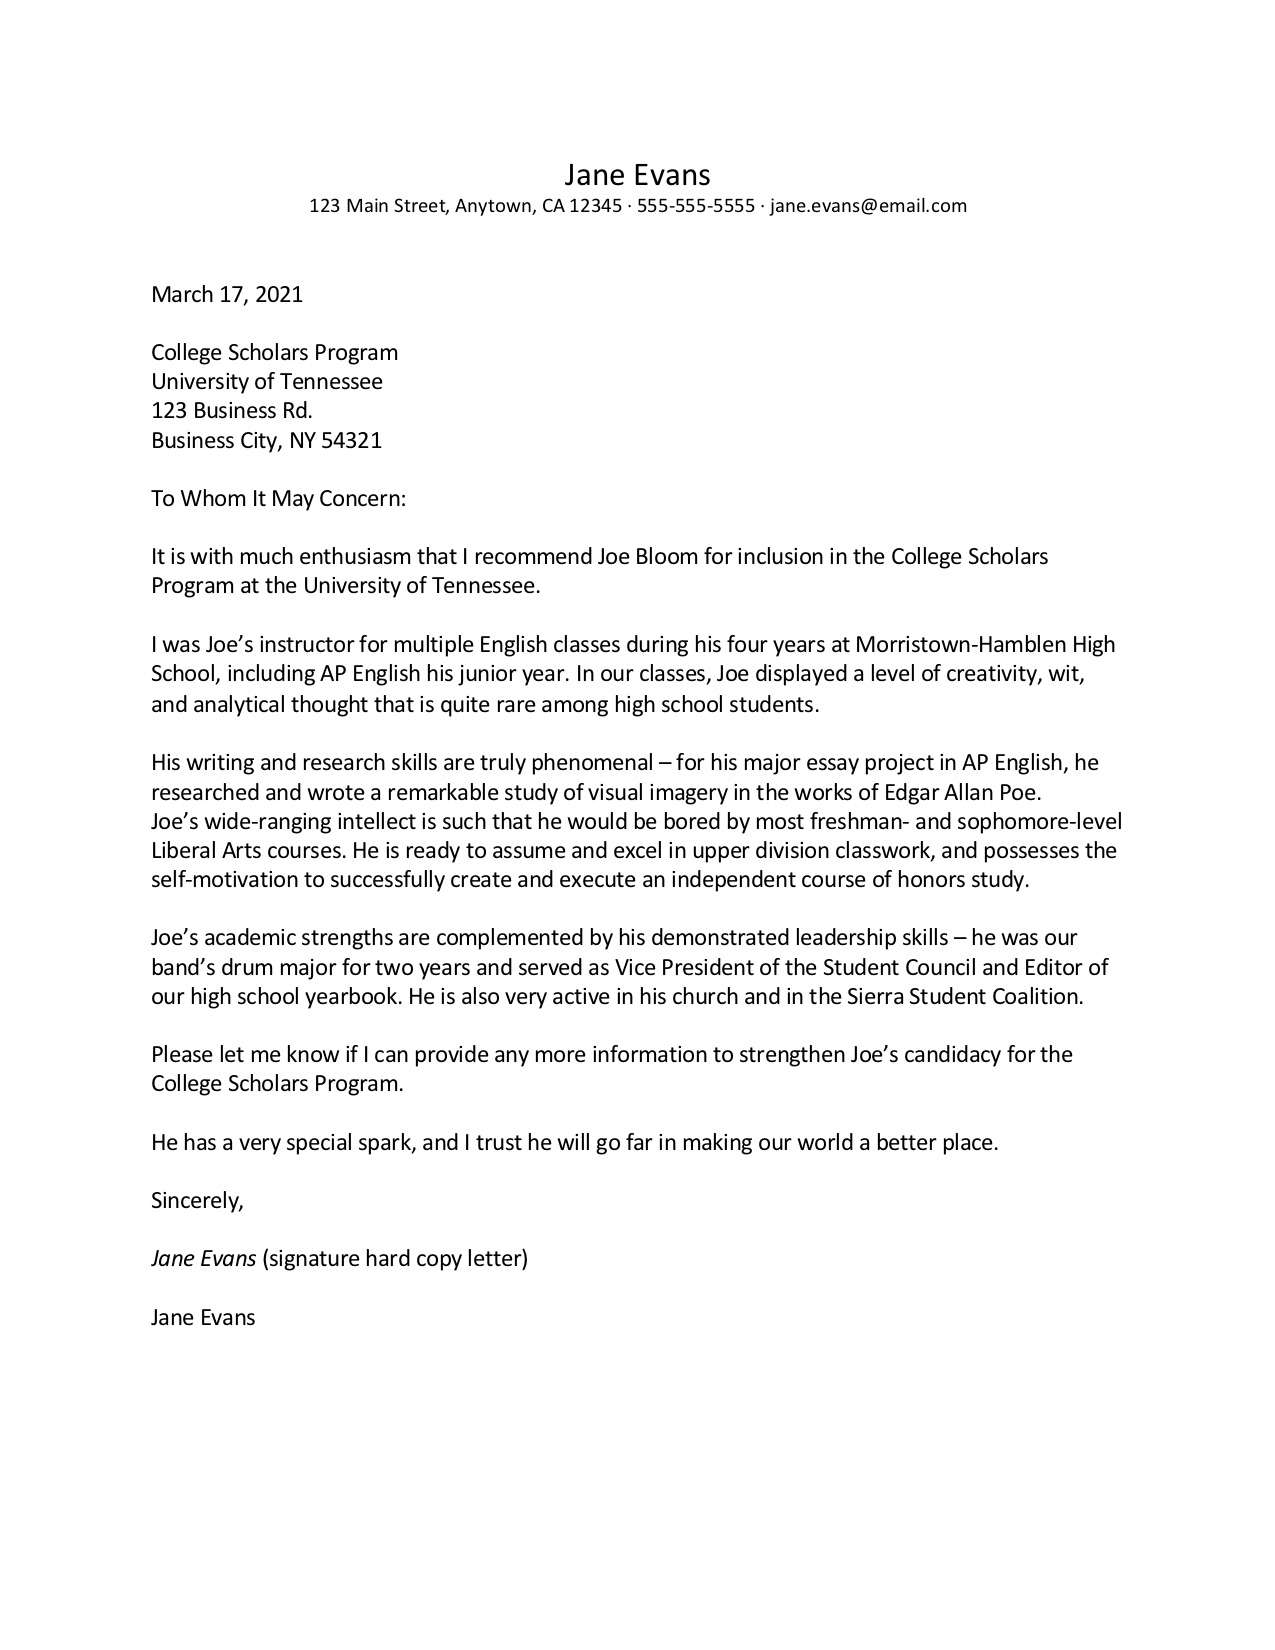 Screenshot of a sample reference letter